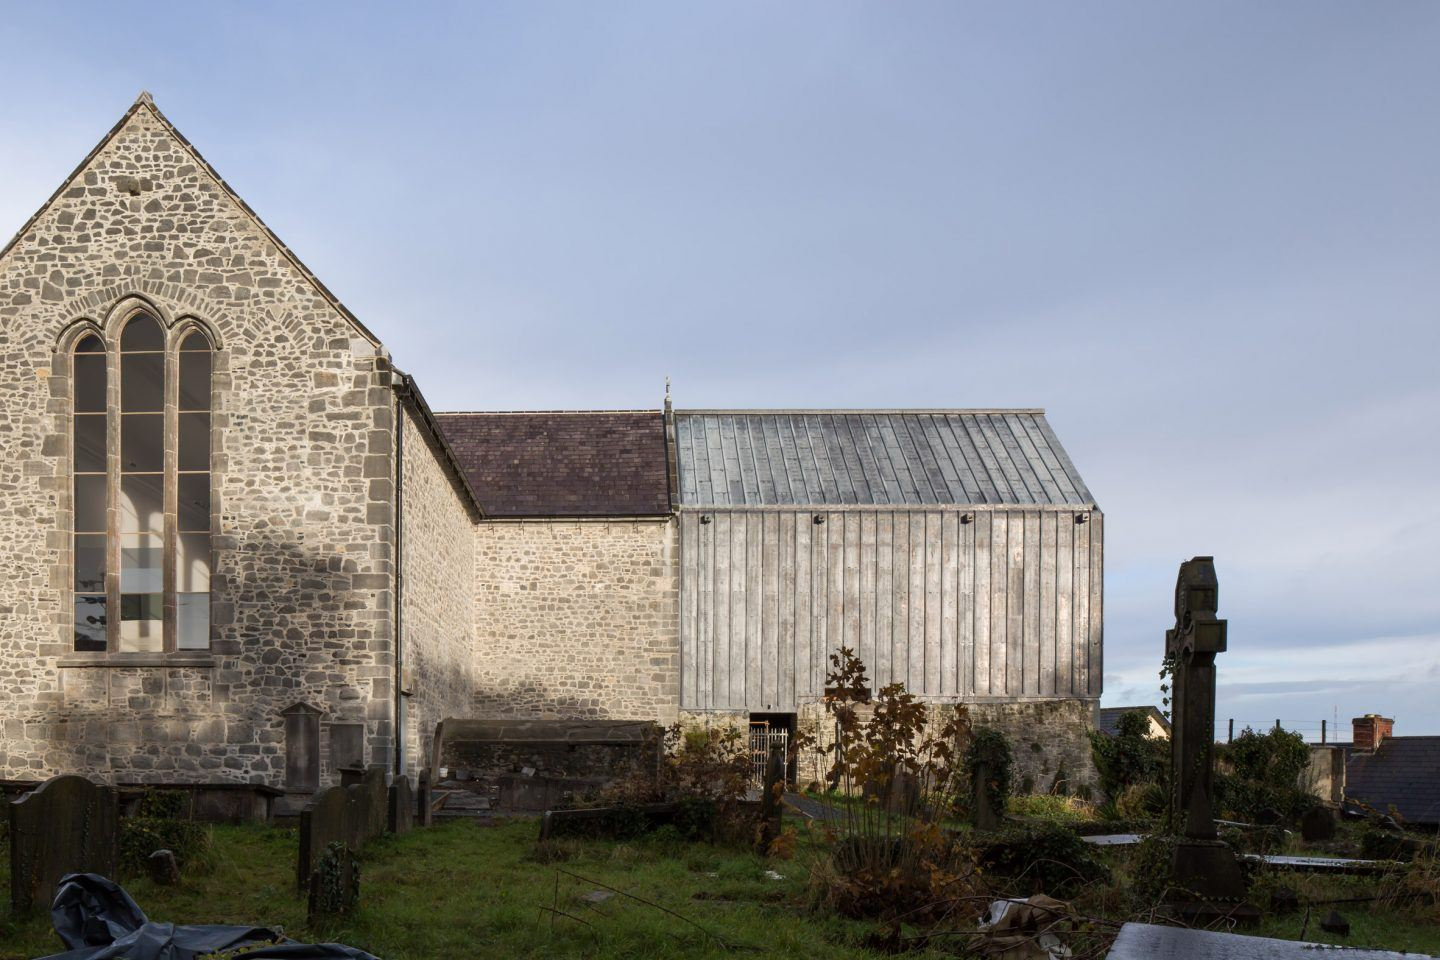 IGNANT-Architecture-Mccullough-Mulvin-Achitects-St-Marys-Medieval-Mile-Musuem-002